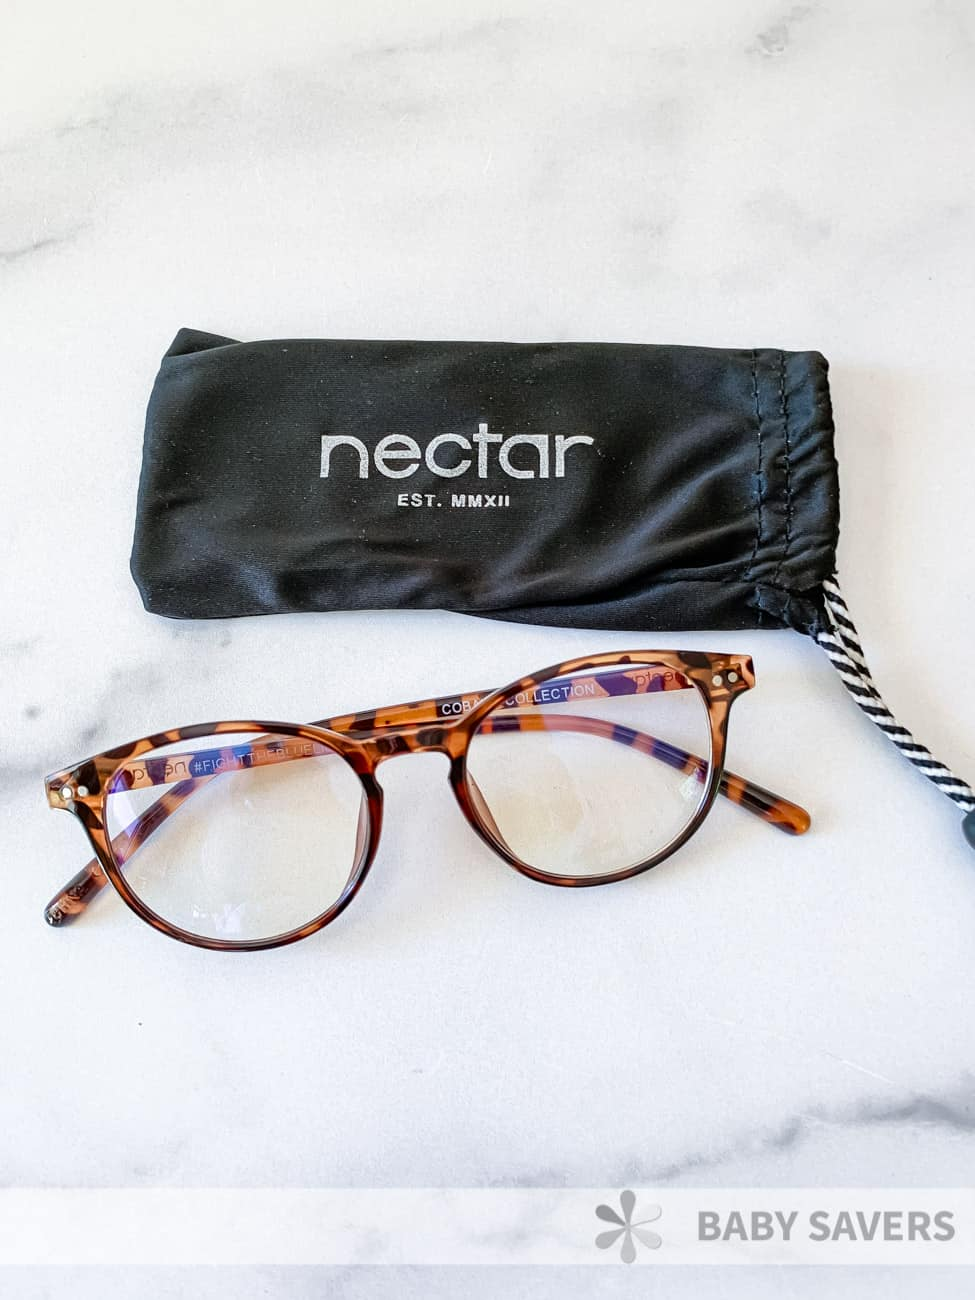 round tortoiseshell glasses with microfiber pouch